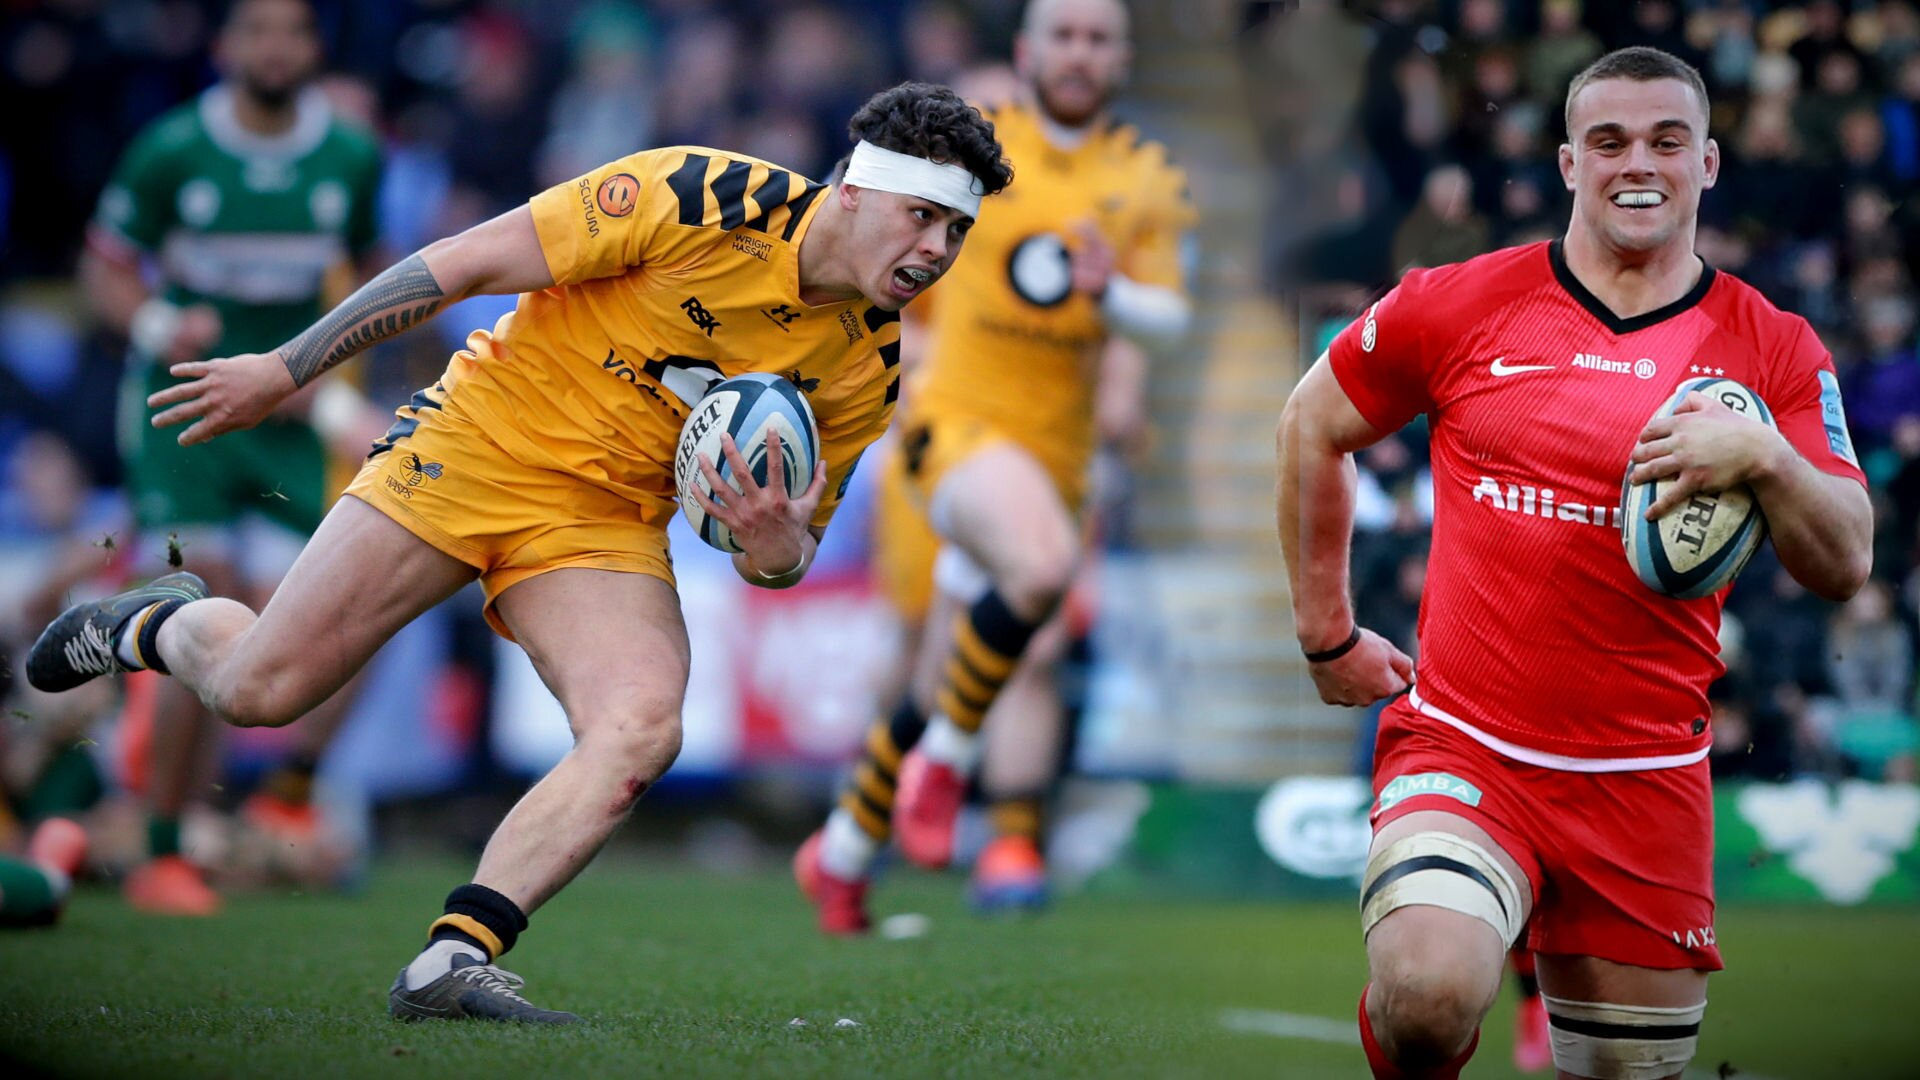 The RugbyPass Premiership - potential - end of 2019/20 season report